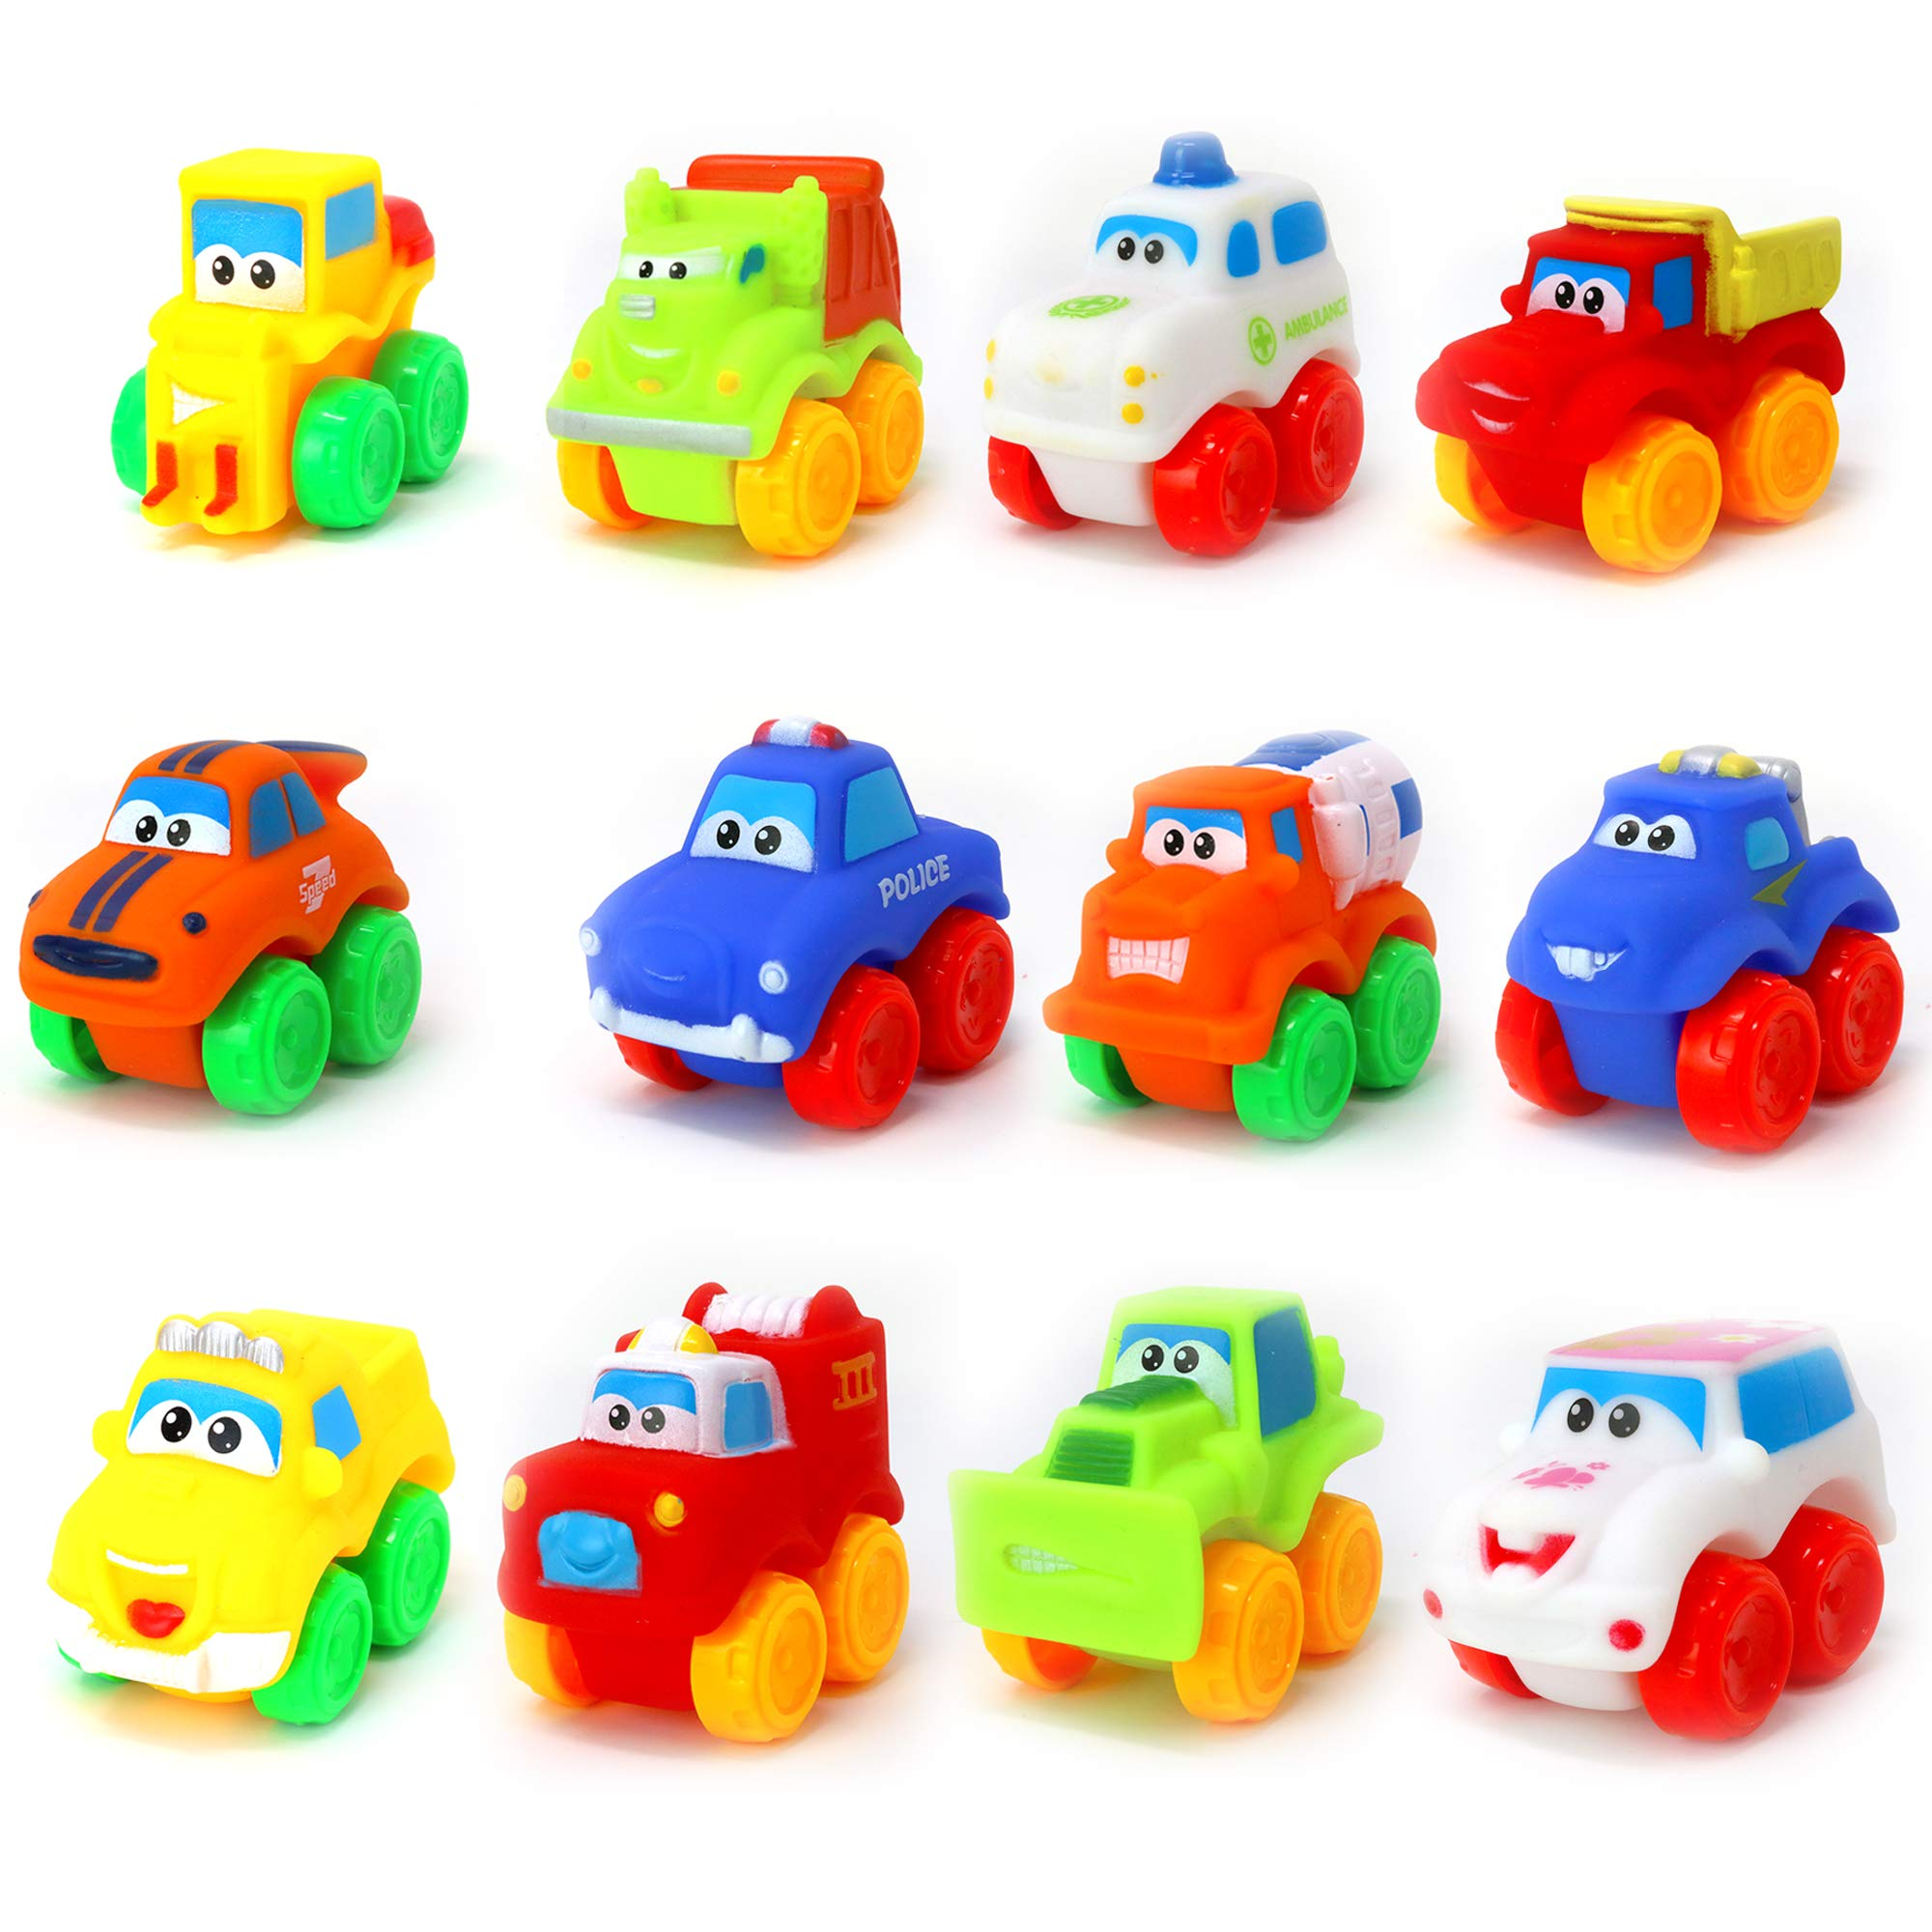 Big Mo's Toys Baby Cars - Soft Rubber Toy Vehicles for Babies and Toddlers - 12 Pieces by Big Mo's Toys (Image #1)